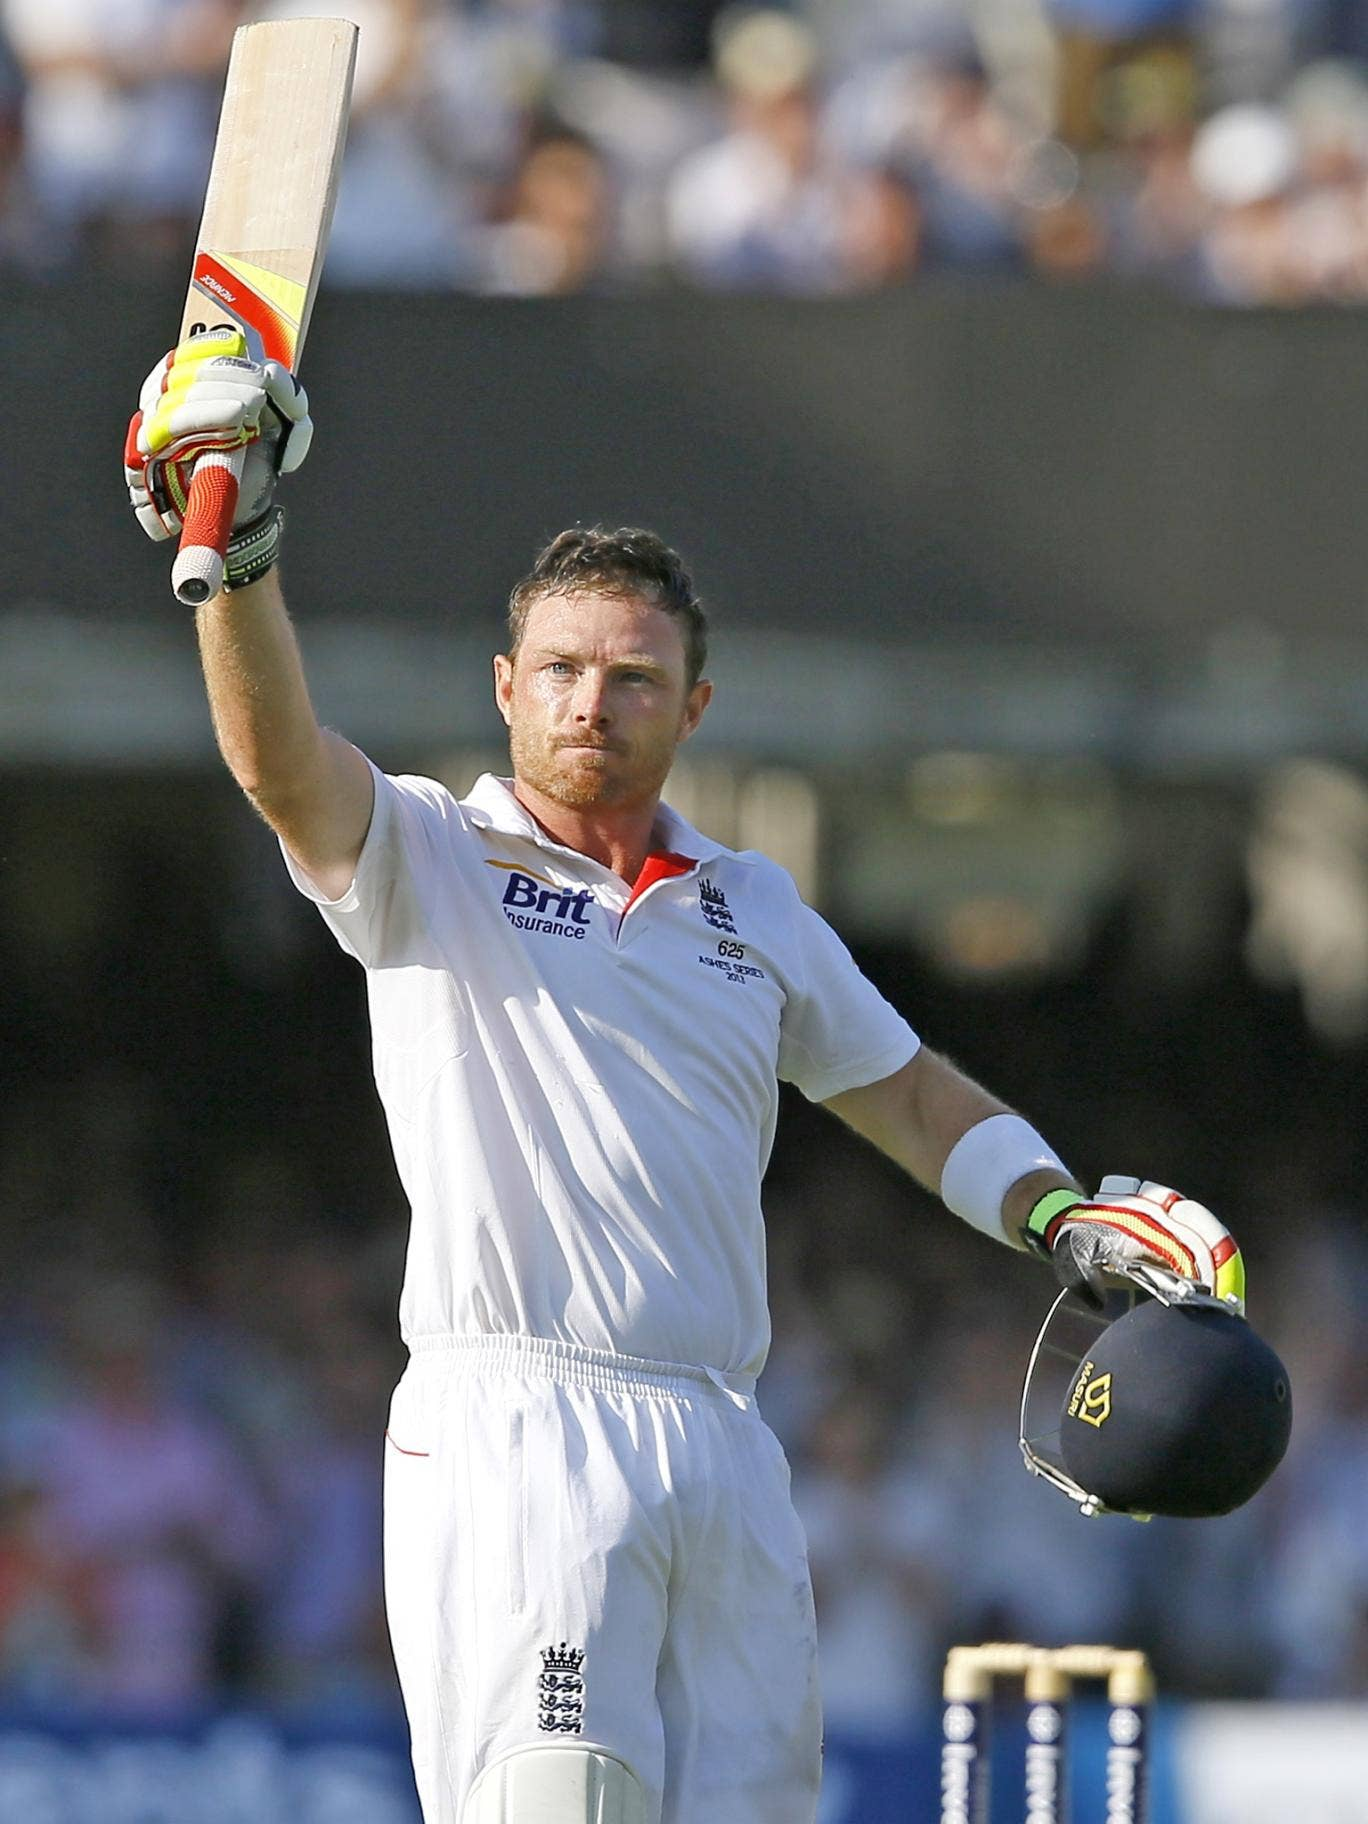 Celebrating my century in the second Test at Lord's